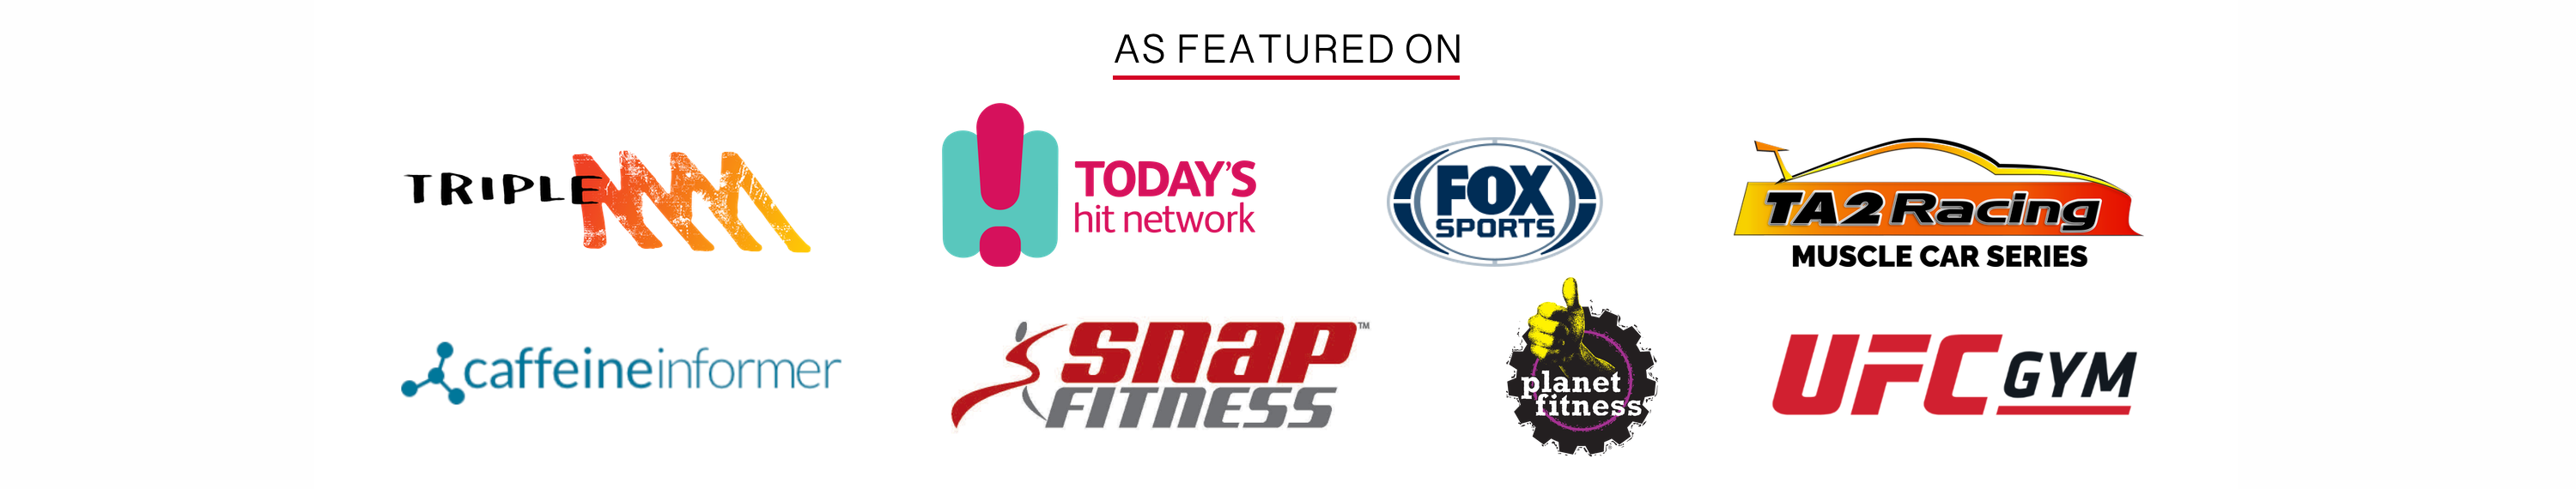 caffeine informer, todays network, triple m, fox sports, ta2 racing, SNB racing, planet fitness, snap fitness, ufc, uf gym